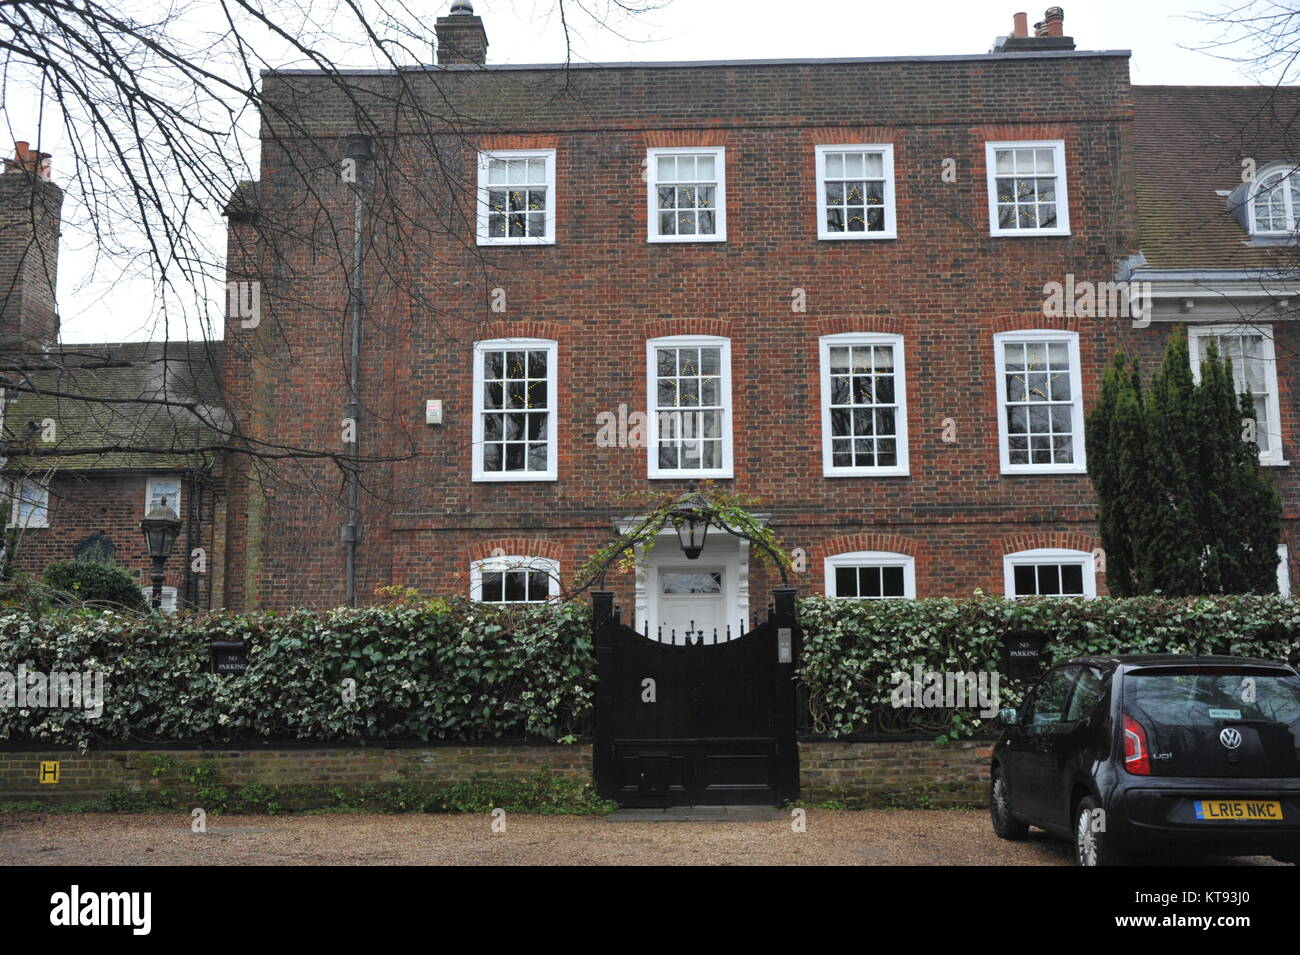 George michaels house in north london where stock photos for The grove house